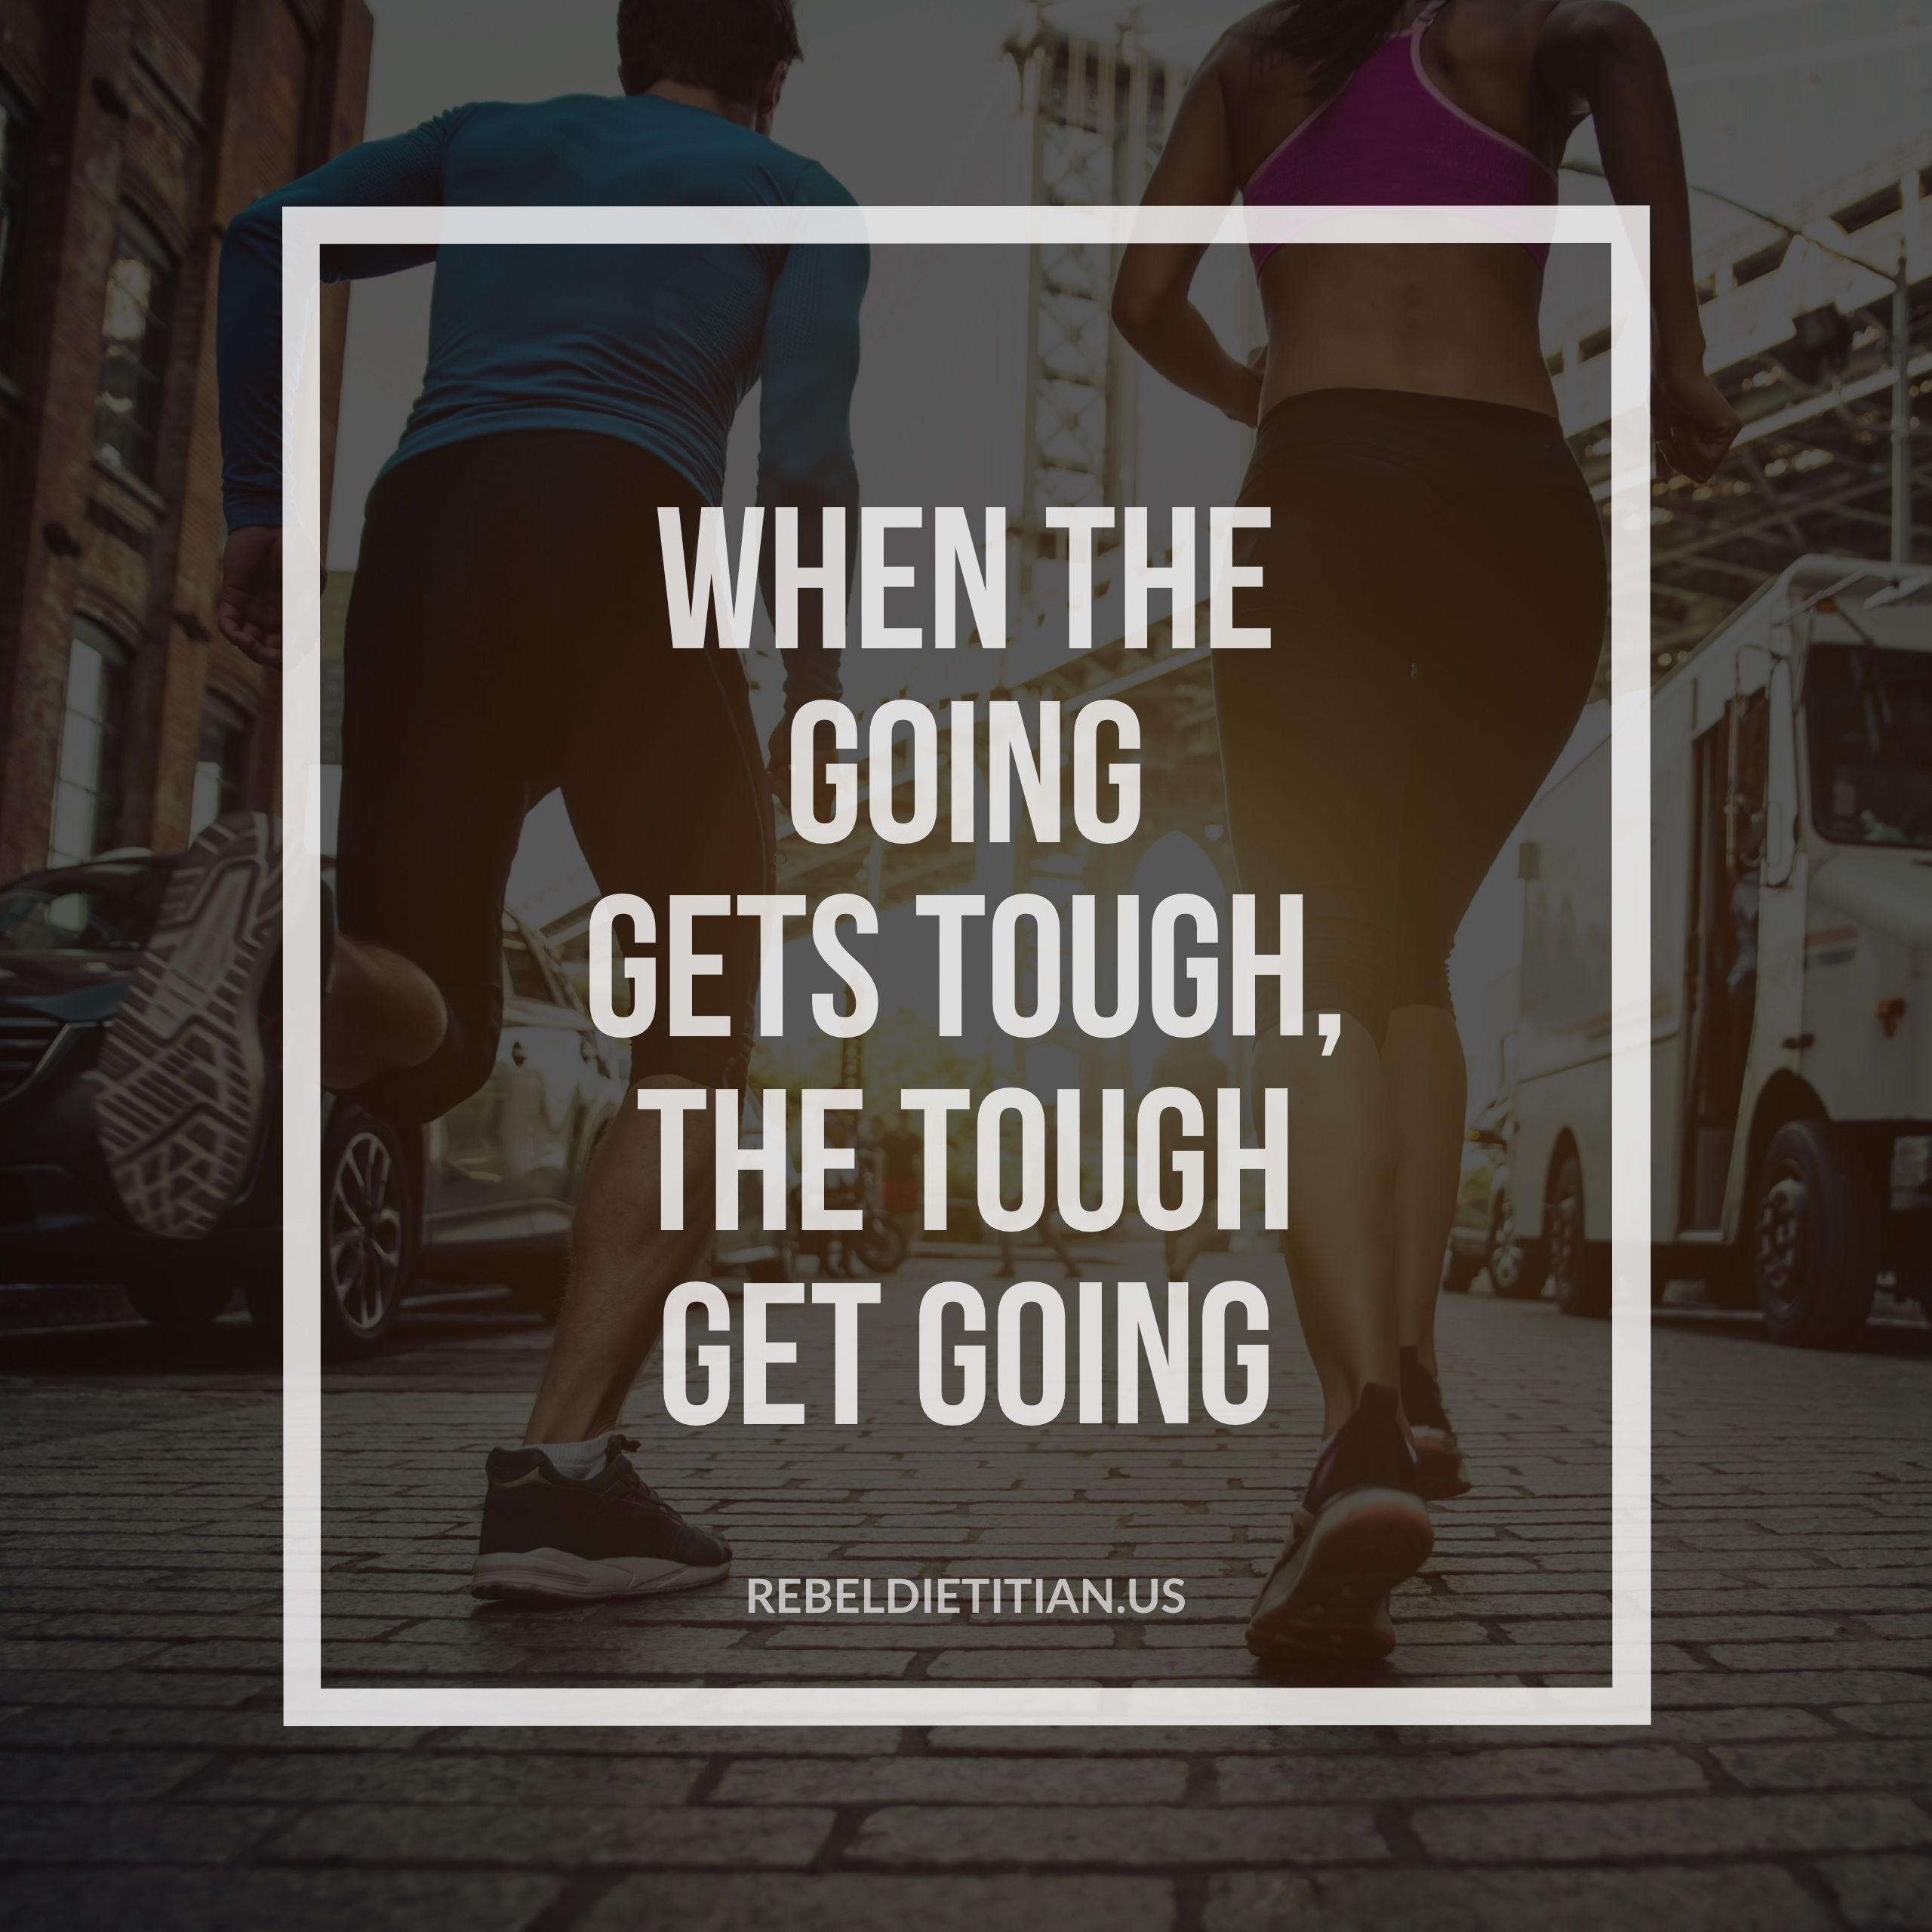 When the going gets tough the tough gets going